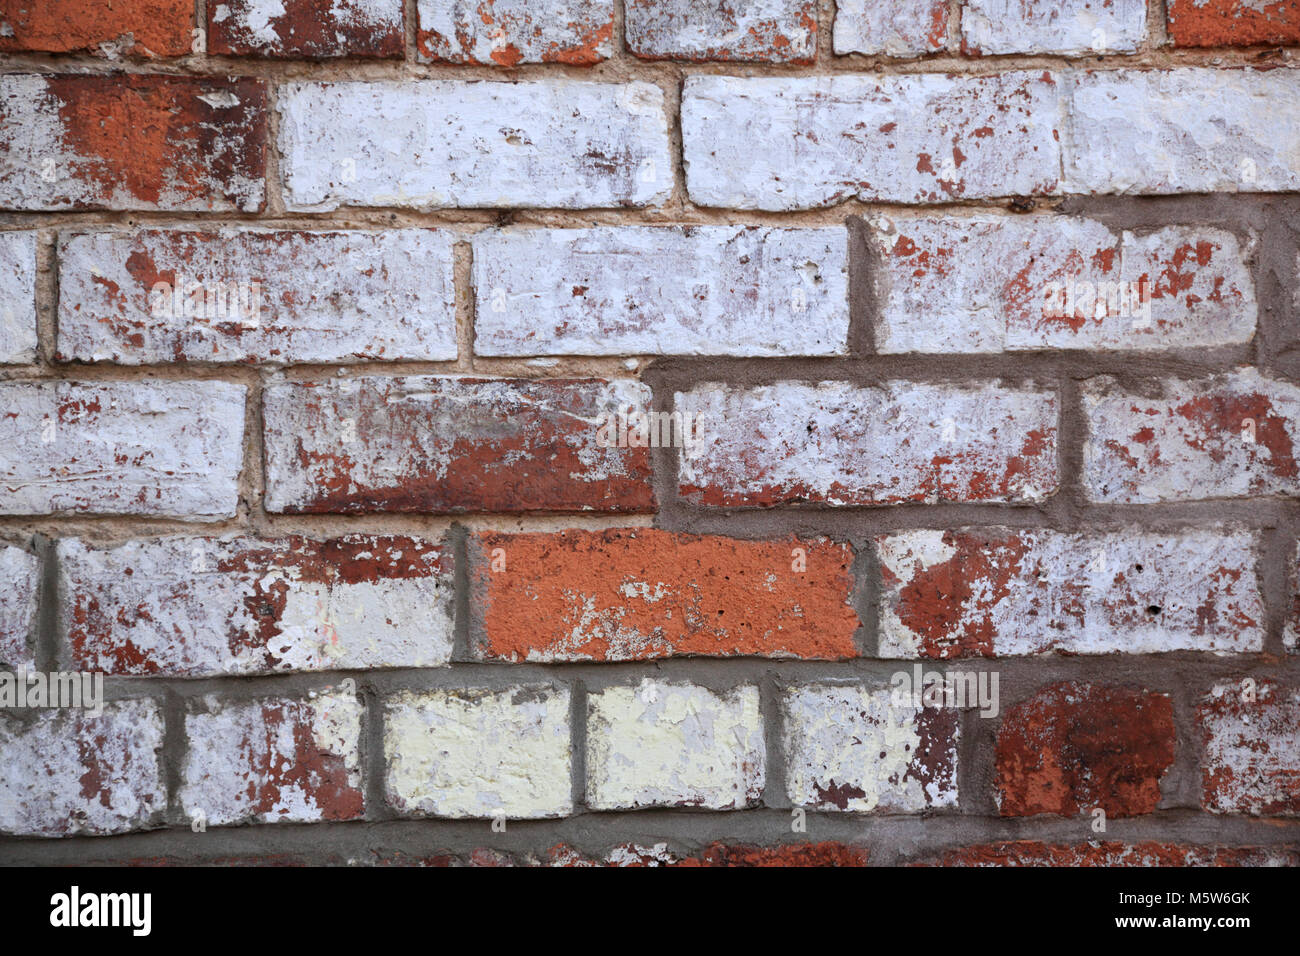 Old neglected brick wall. - Stock Image